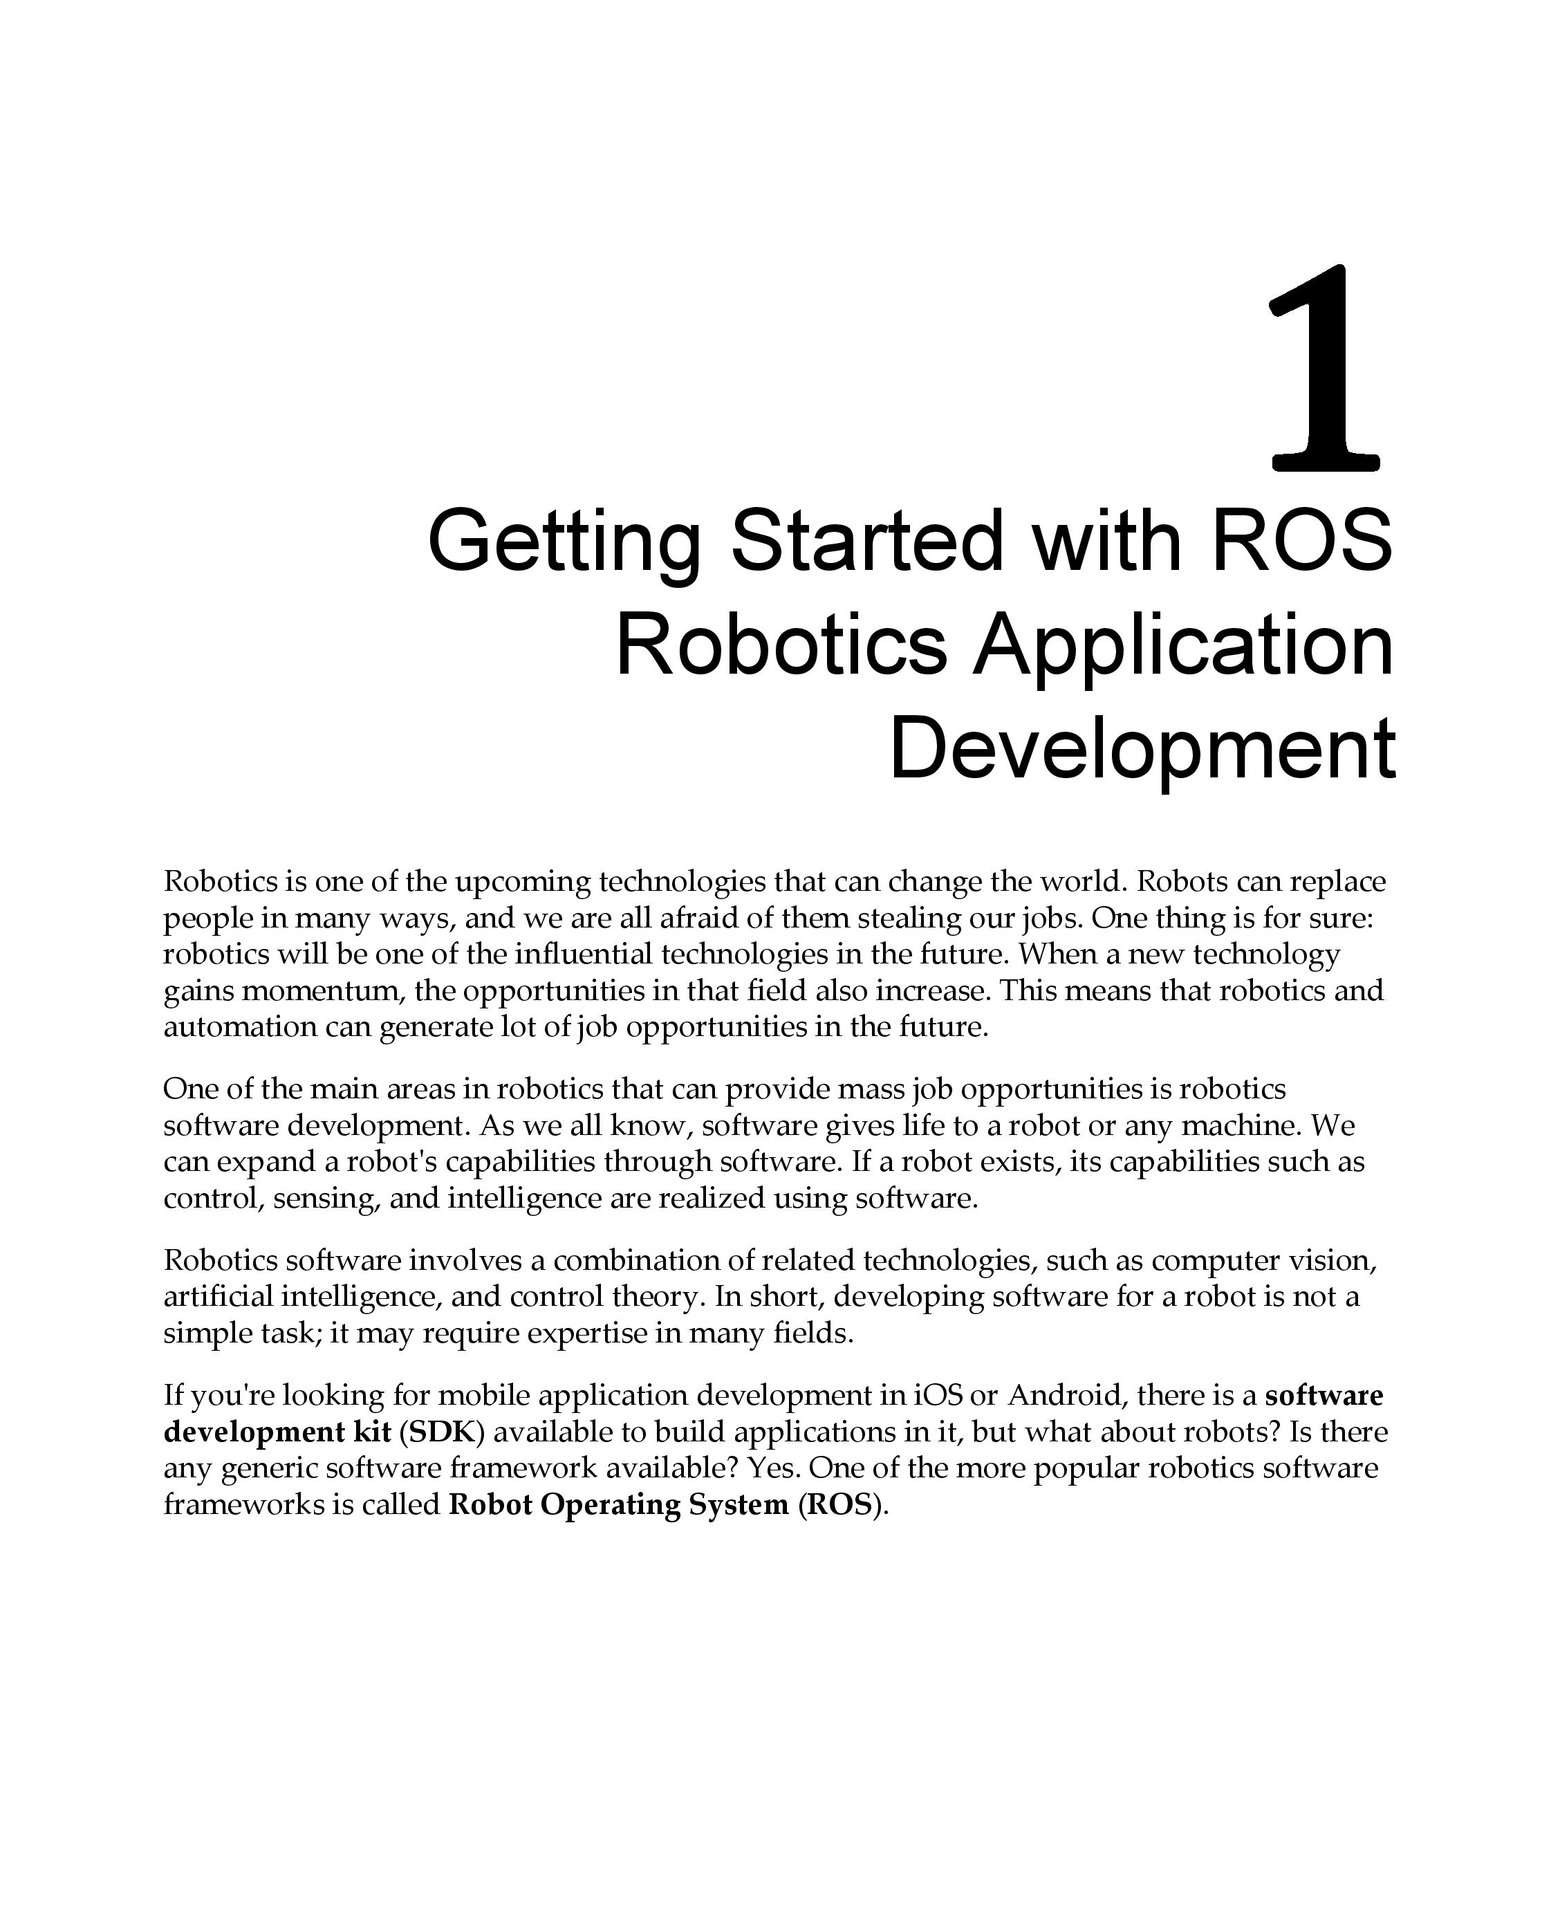 9781783554713 ros robotics projects %281%29 ilovepdf compressed %281%29 page 026